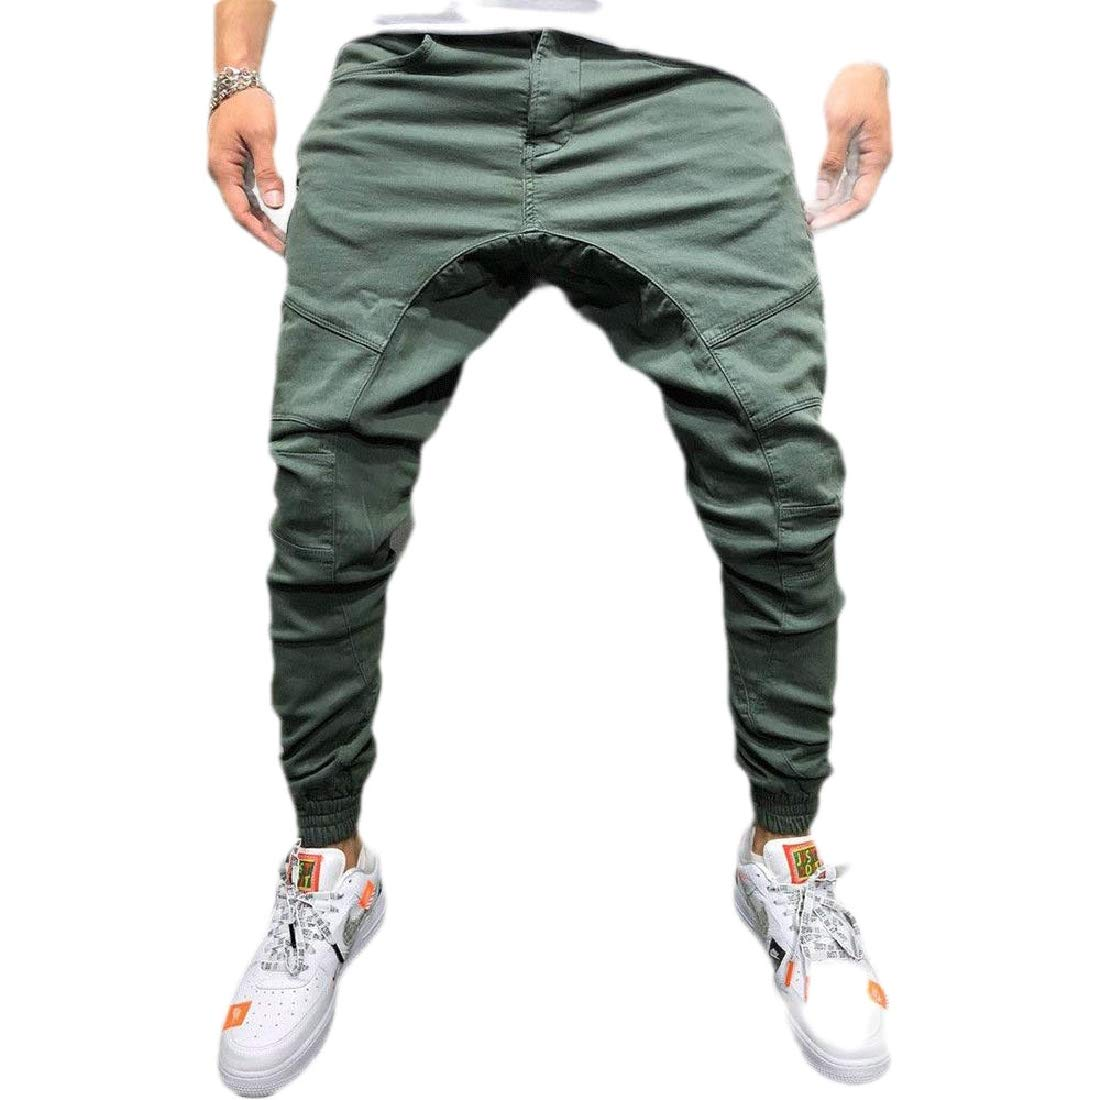 JXG Men Exercise Multi-Pocket Cargo Loose Fit Solid Color Pants Trousers